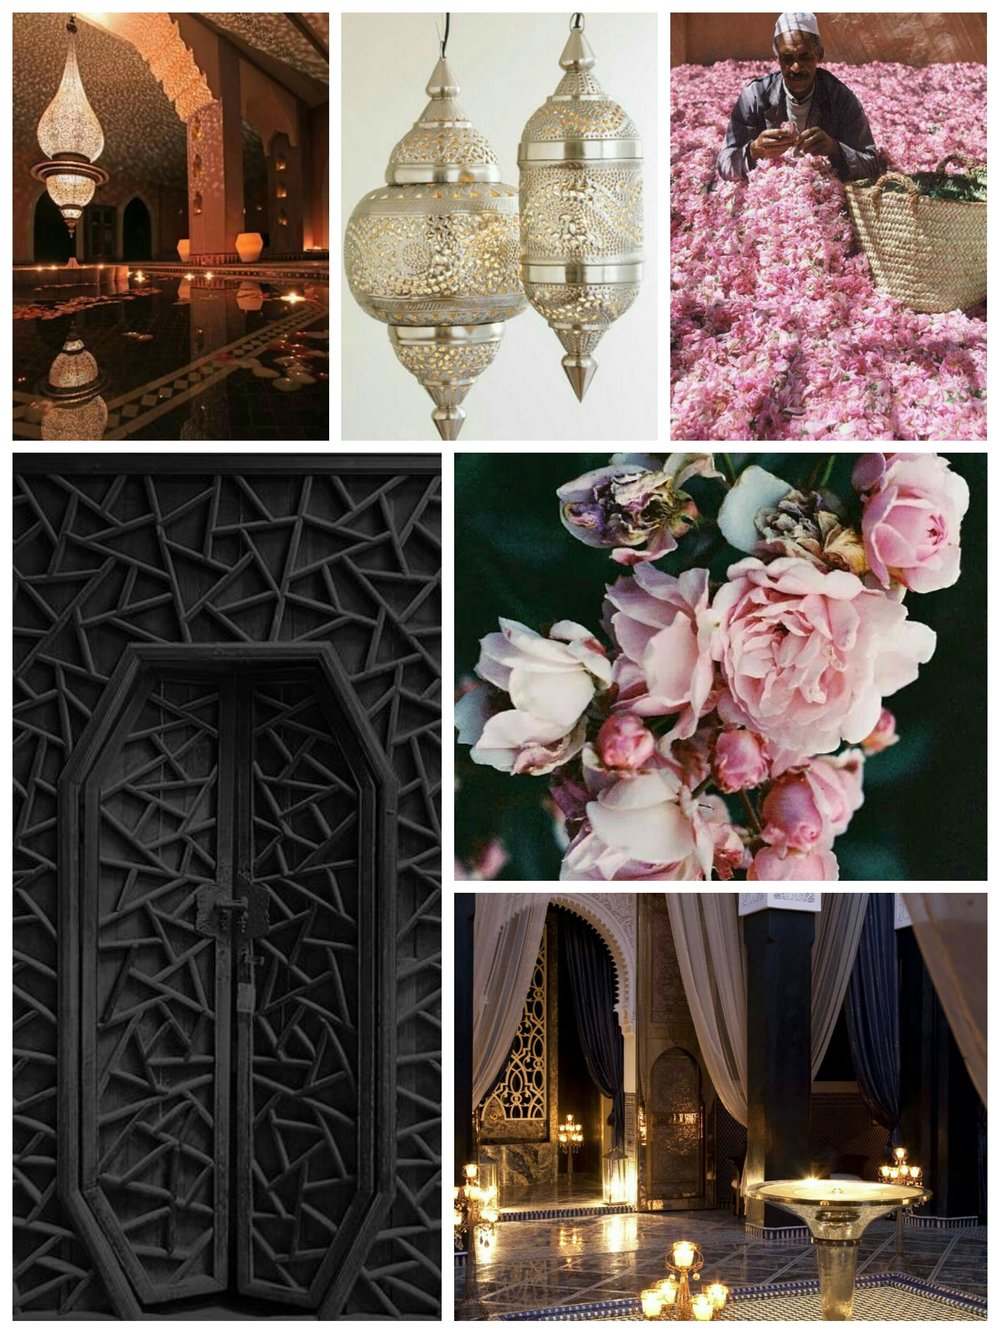 moodboard  - Our Mood board that inspired us to create the Enchanted Arabesque Nights